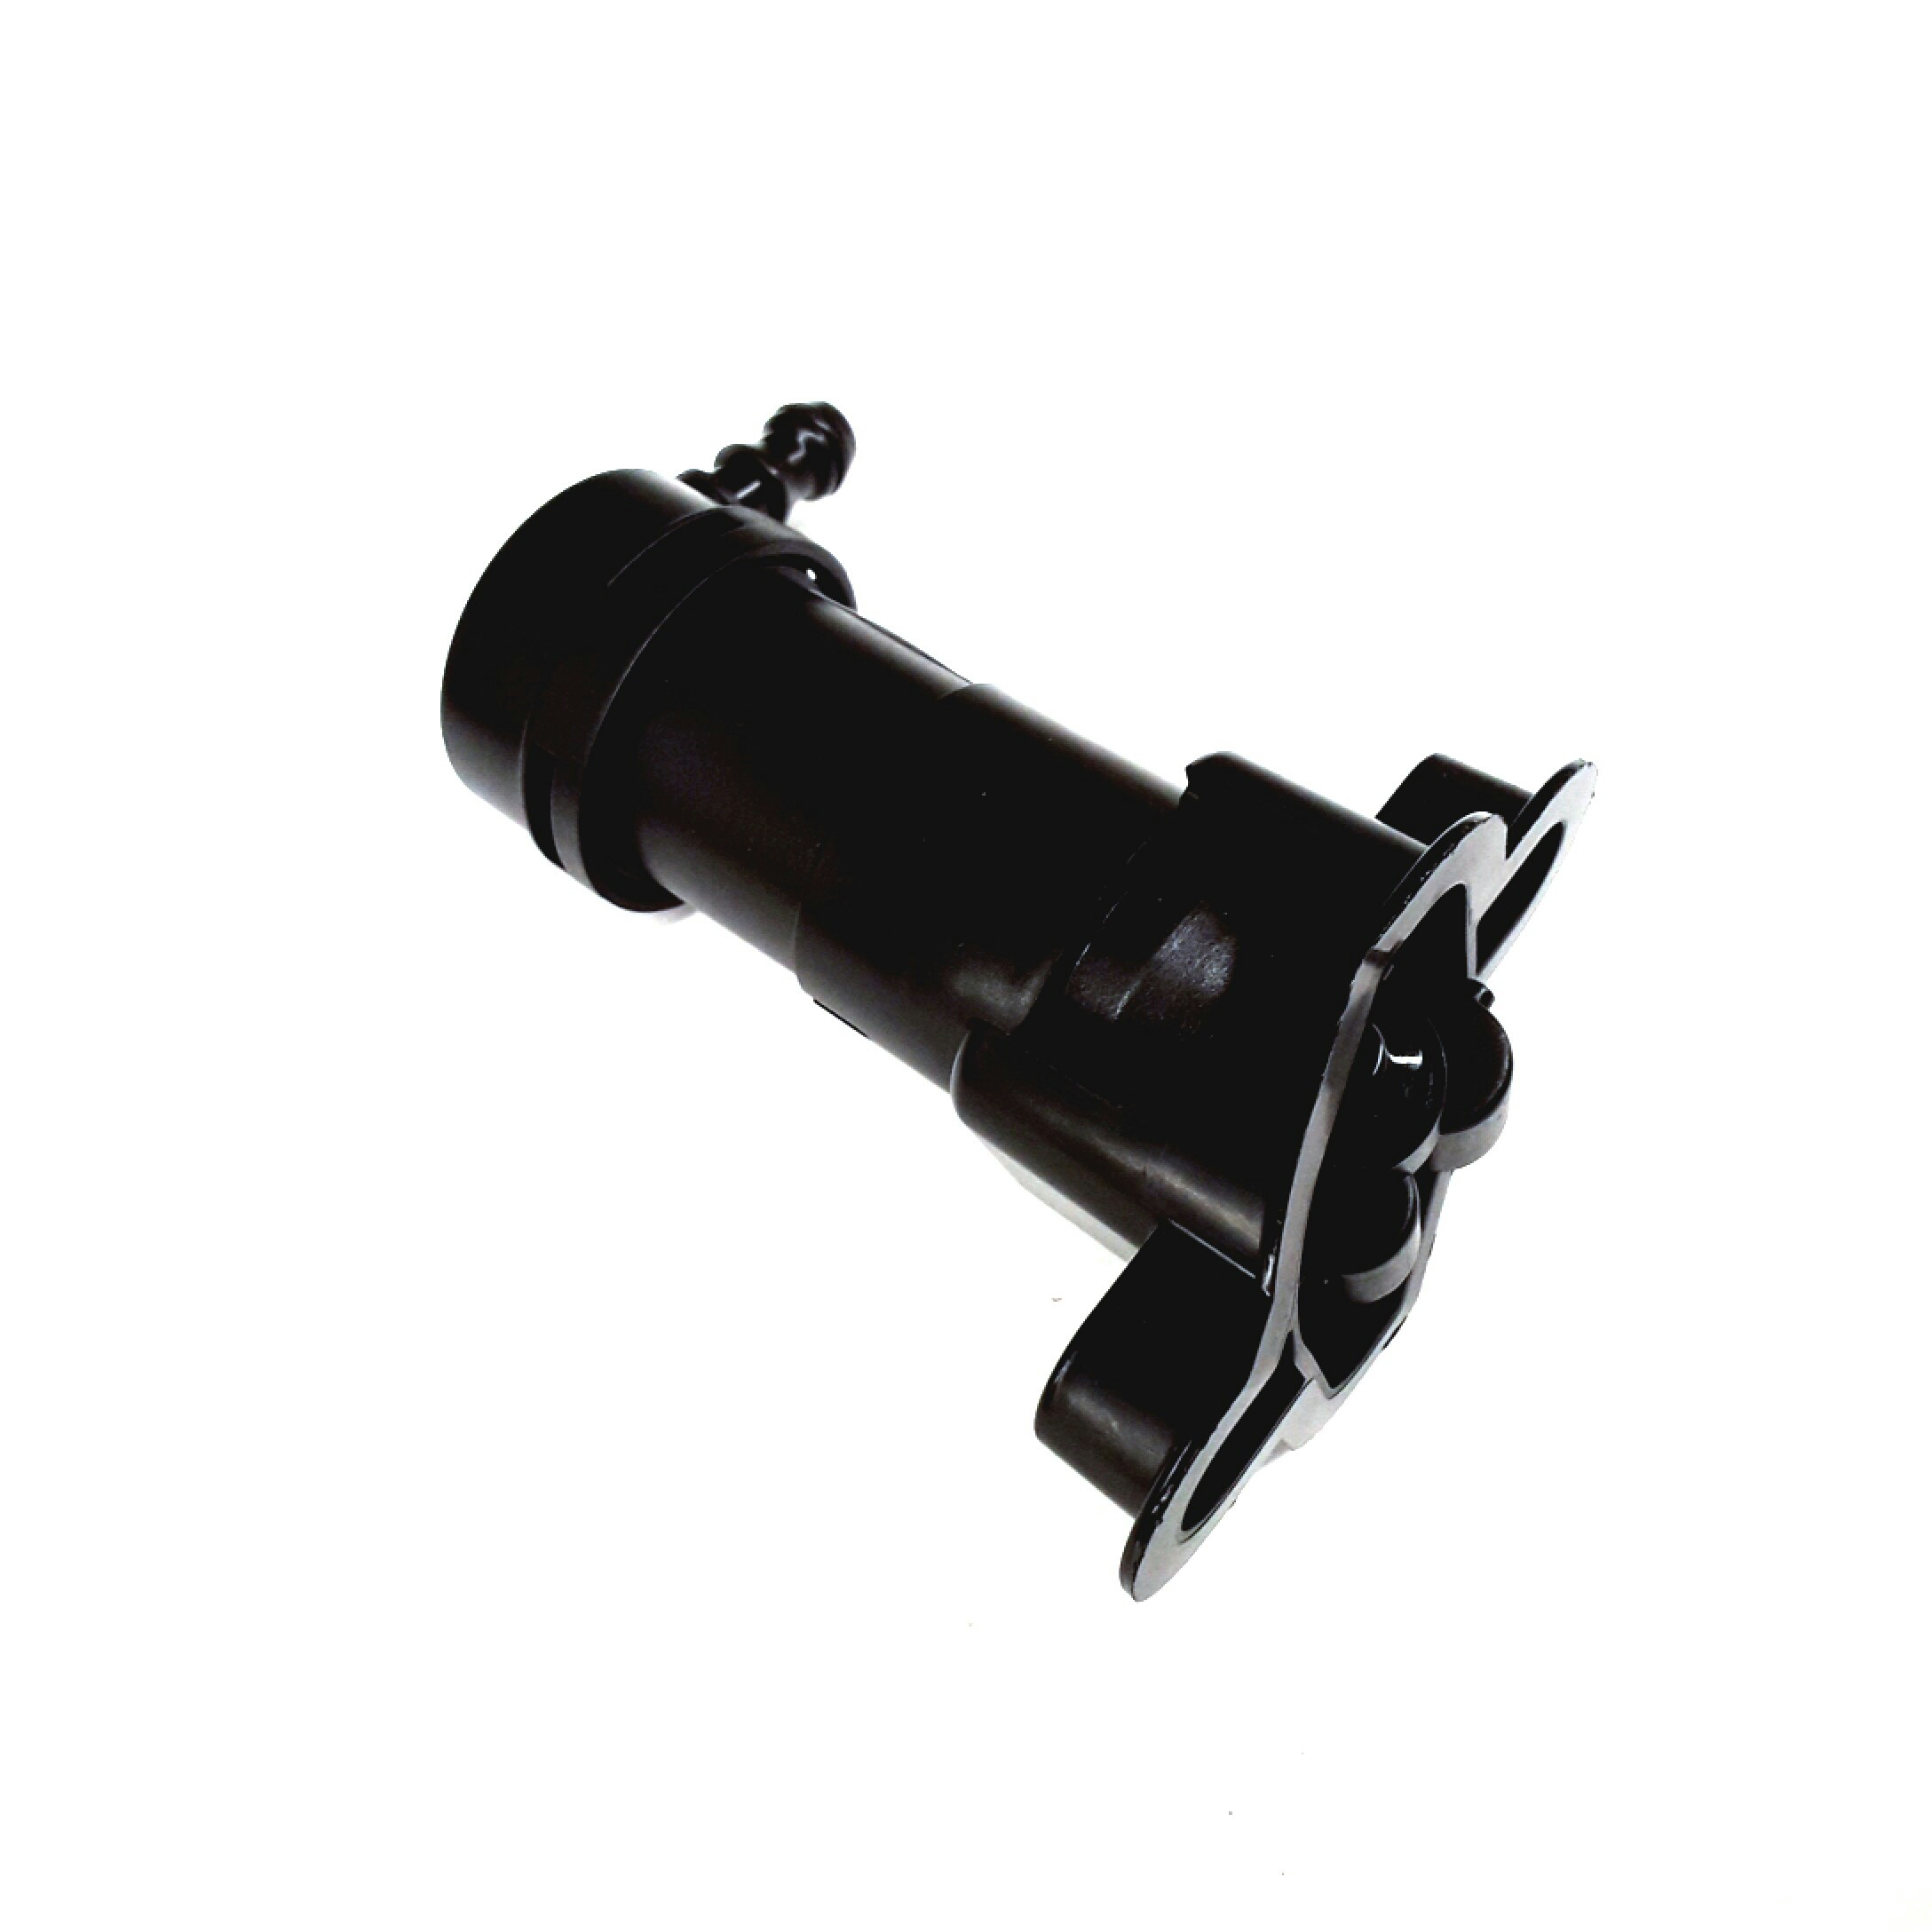 2009 Audi A4 Cabriolet Convertible Headlight Washer Nozzle